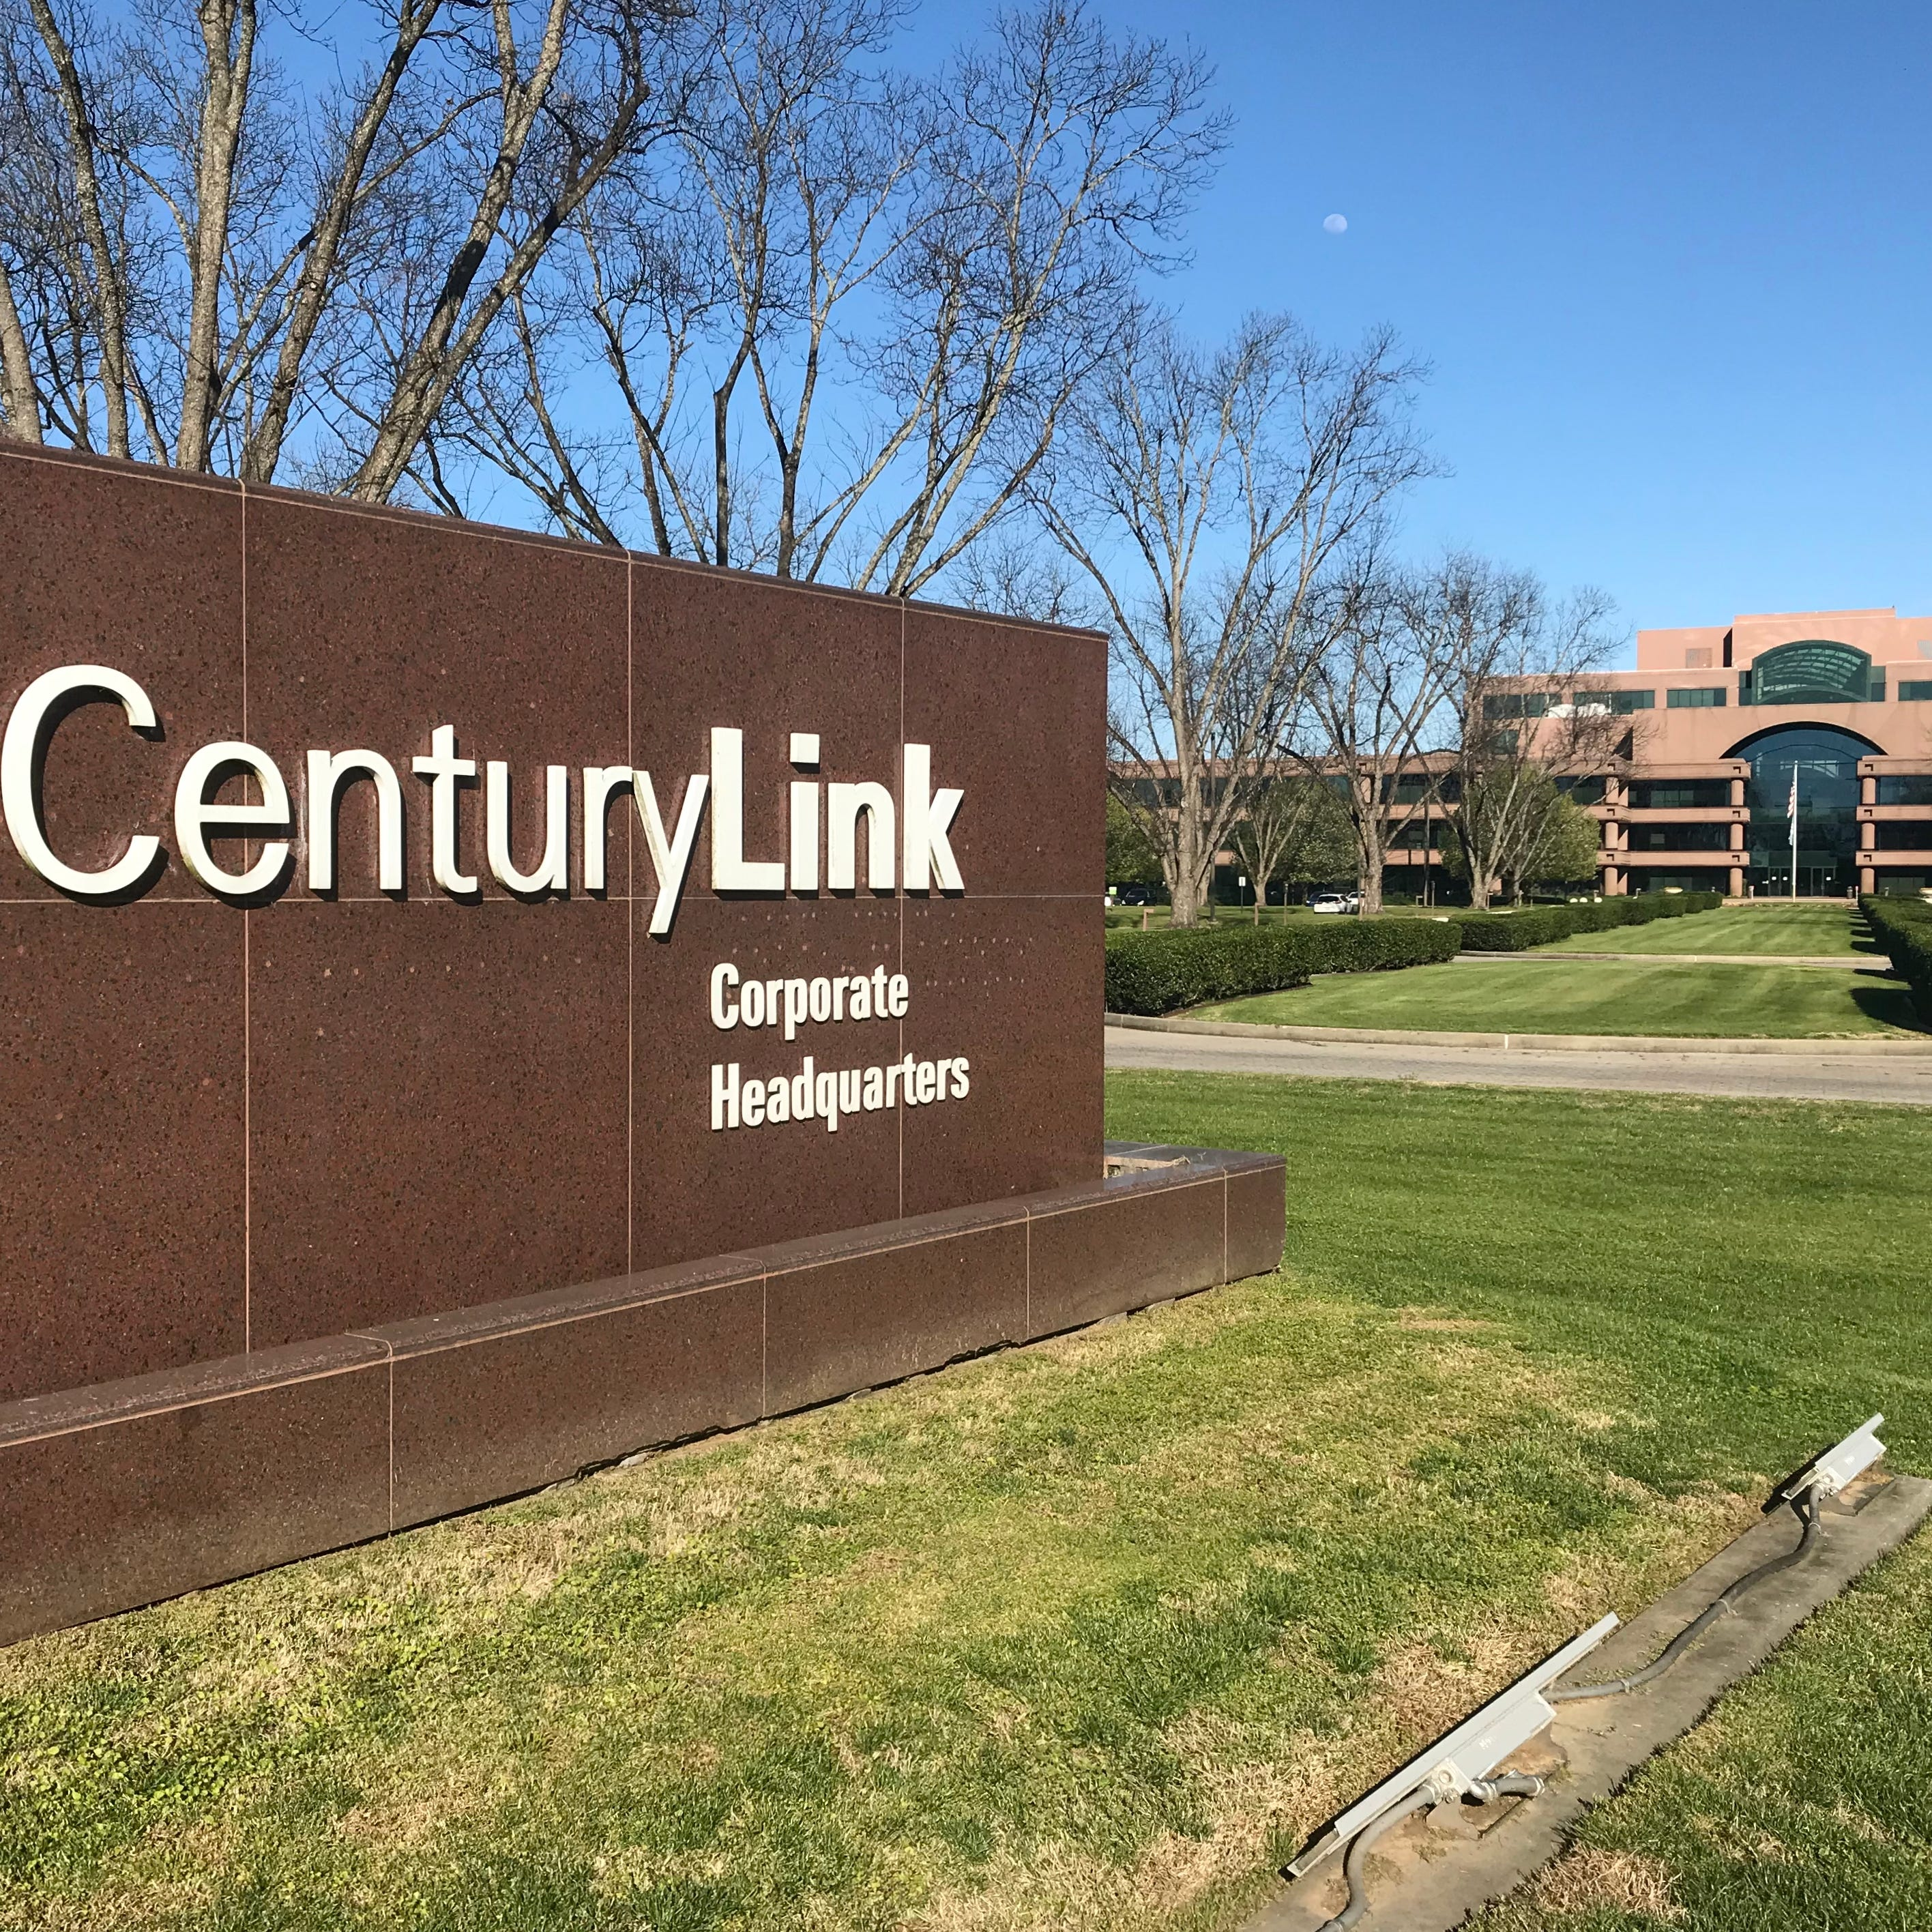 EXCLUSIVE: Gov. Edwards, CenturyLink reach deal to keep HQ in La.